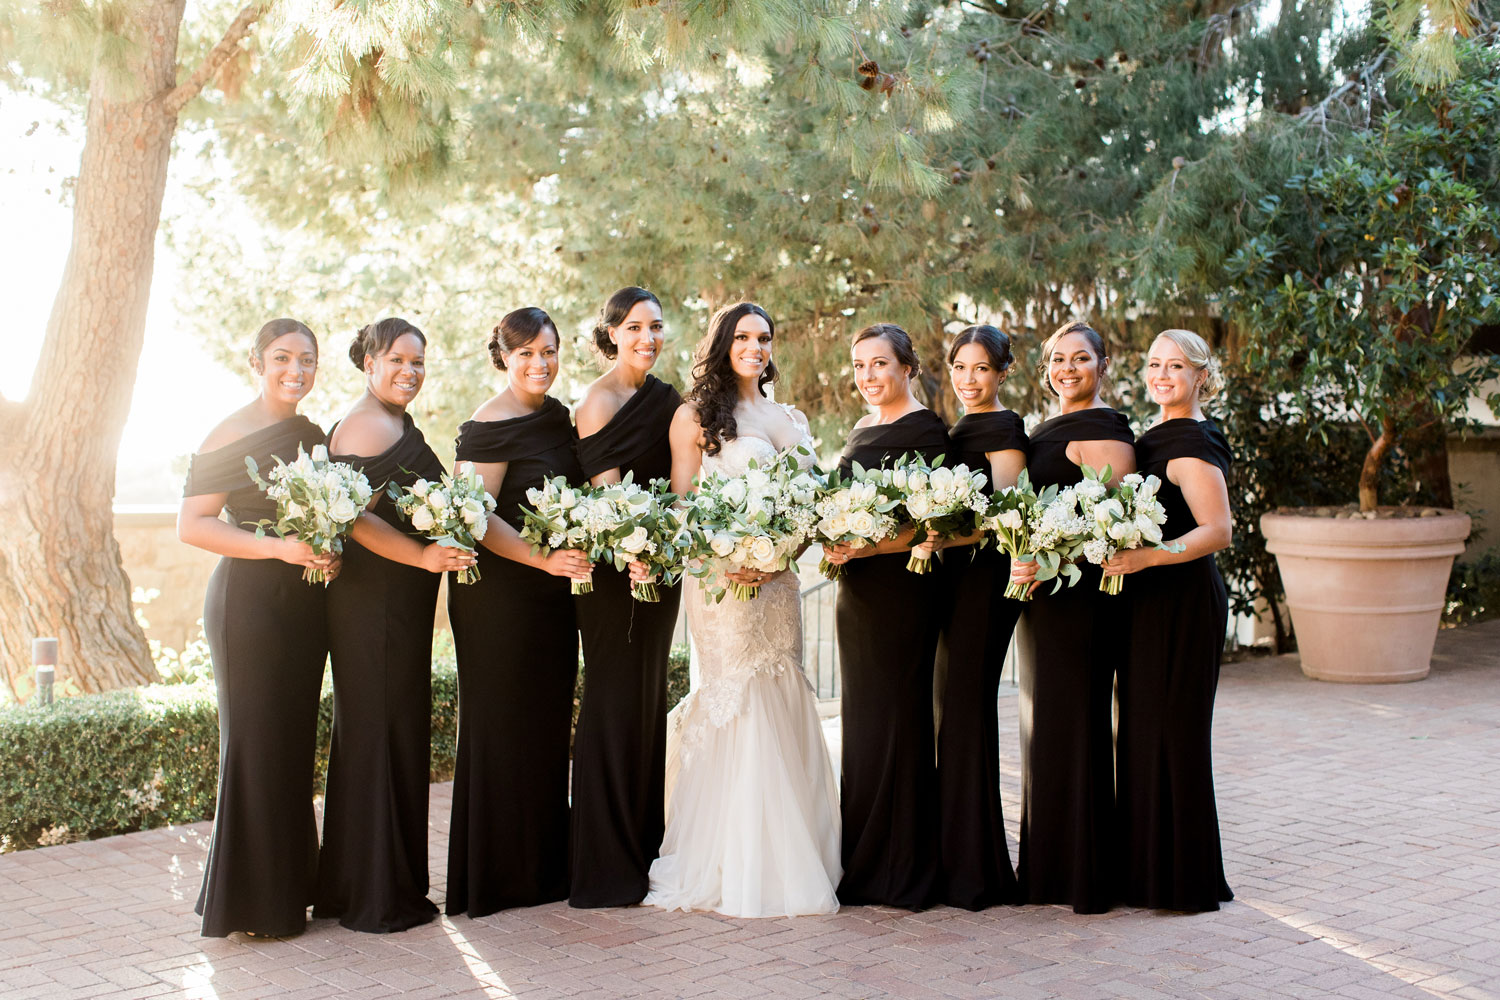 Charlise Castro in wedding dress styled by Maradee Wahl Dear Maradee with bridesmaids black dresses George Springer wedding